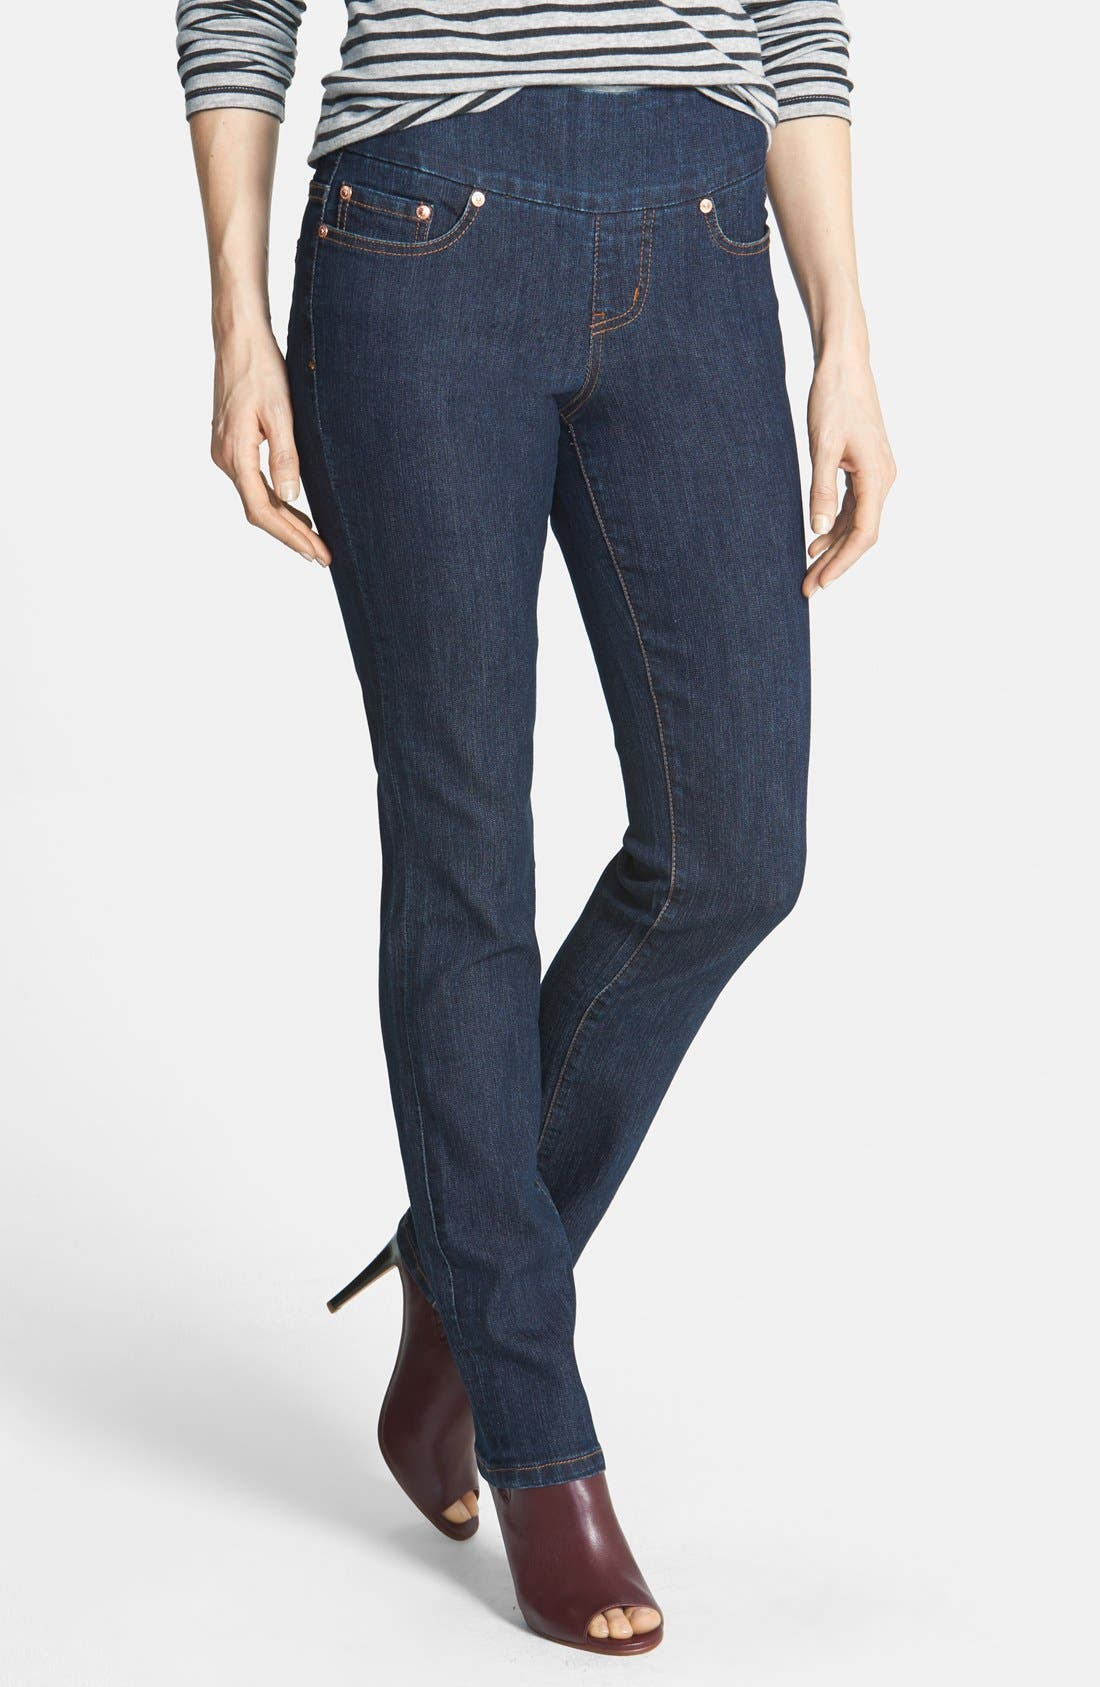 Main Image - Jag Jeans 'Peri' Pull-On Straight Leg Jeans (Dark Shadow) (Online Only)